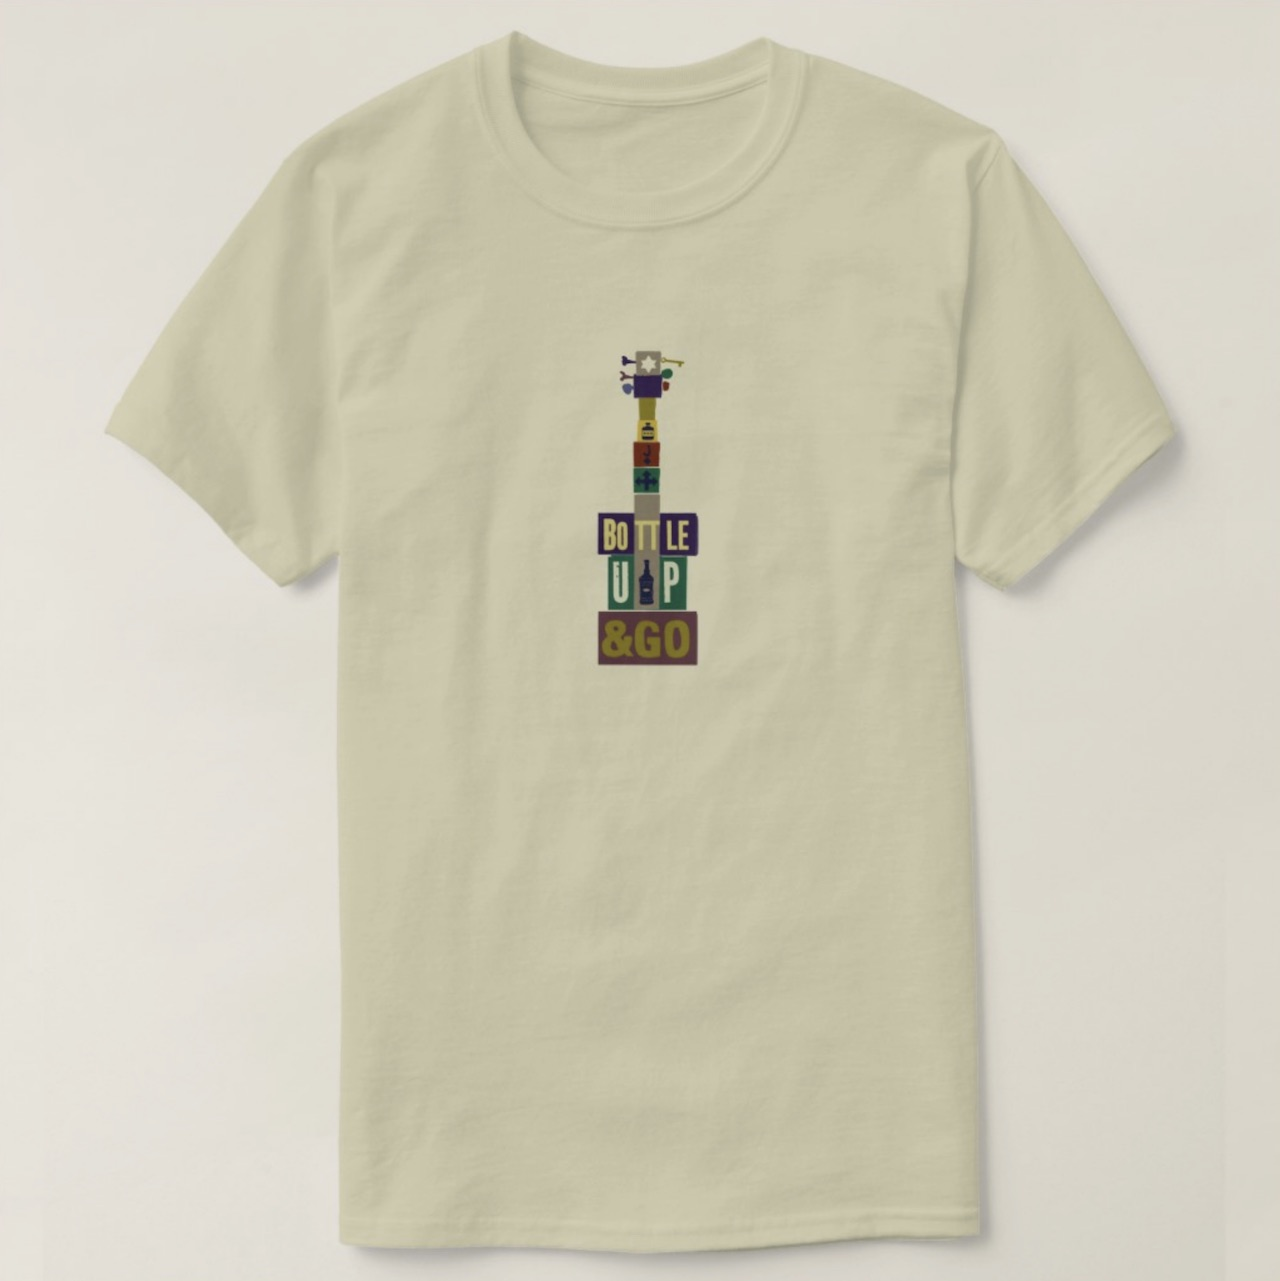 bottle up and go print on demand t shirt